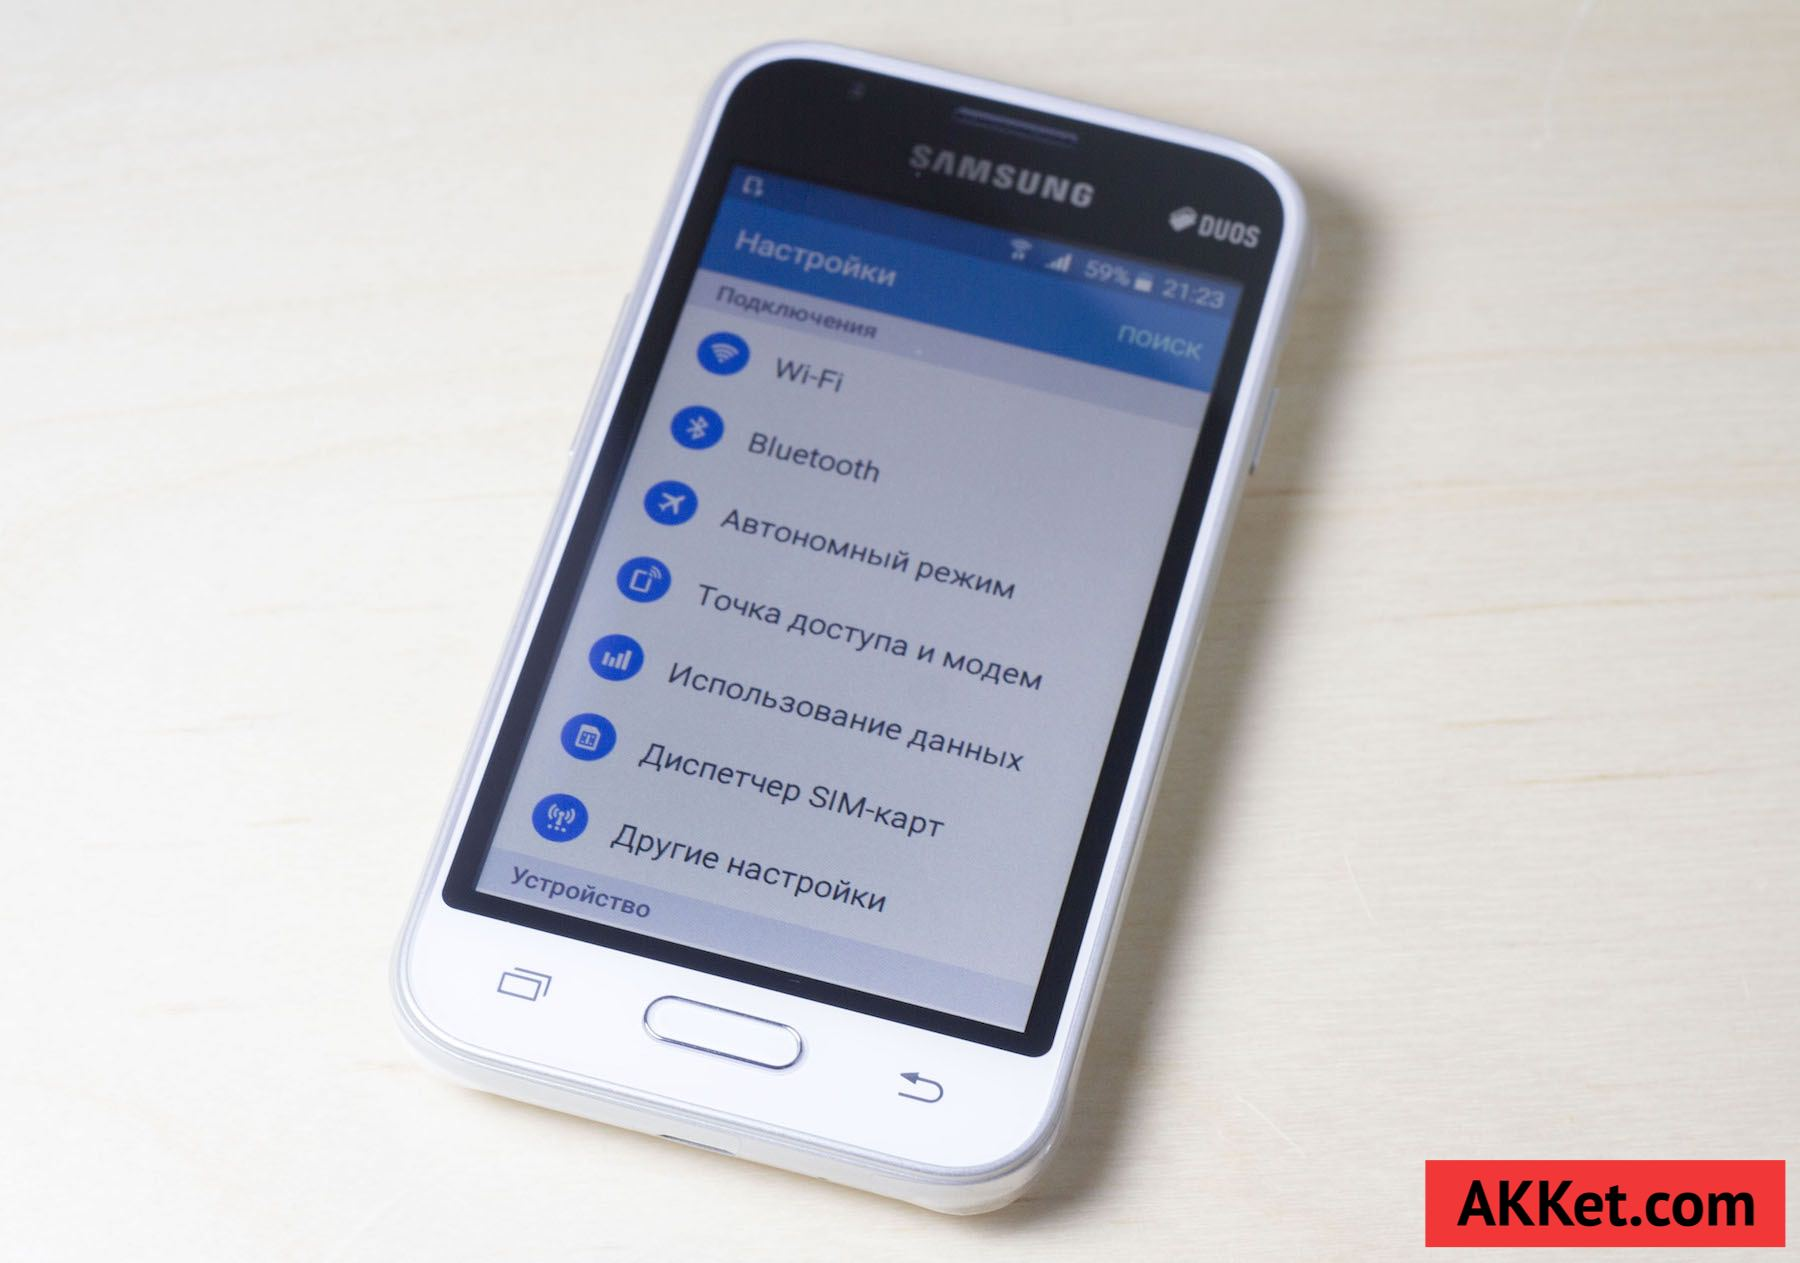 Samsung Galaxy J1 mini Duos Android 5.1.1 Lollipop Review 17